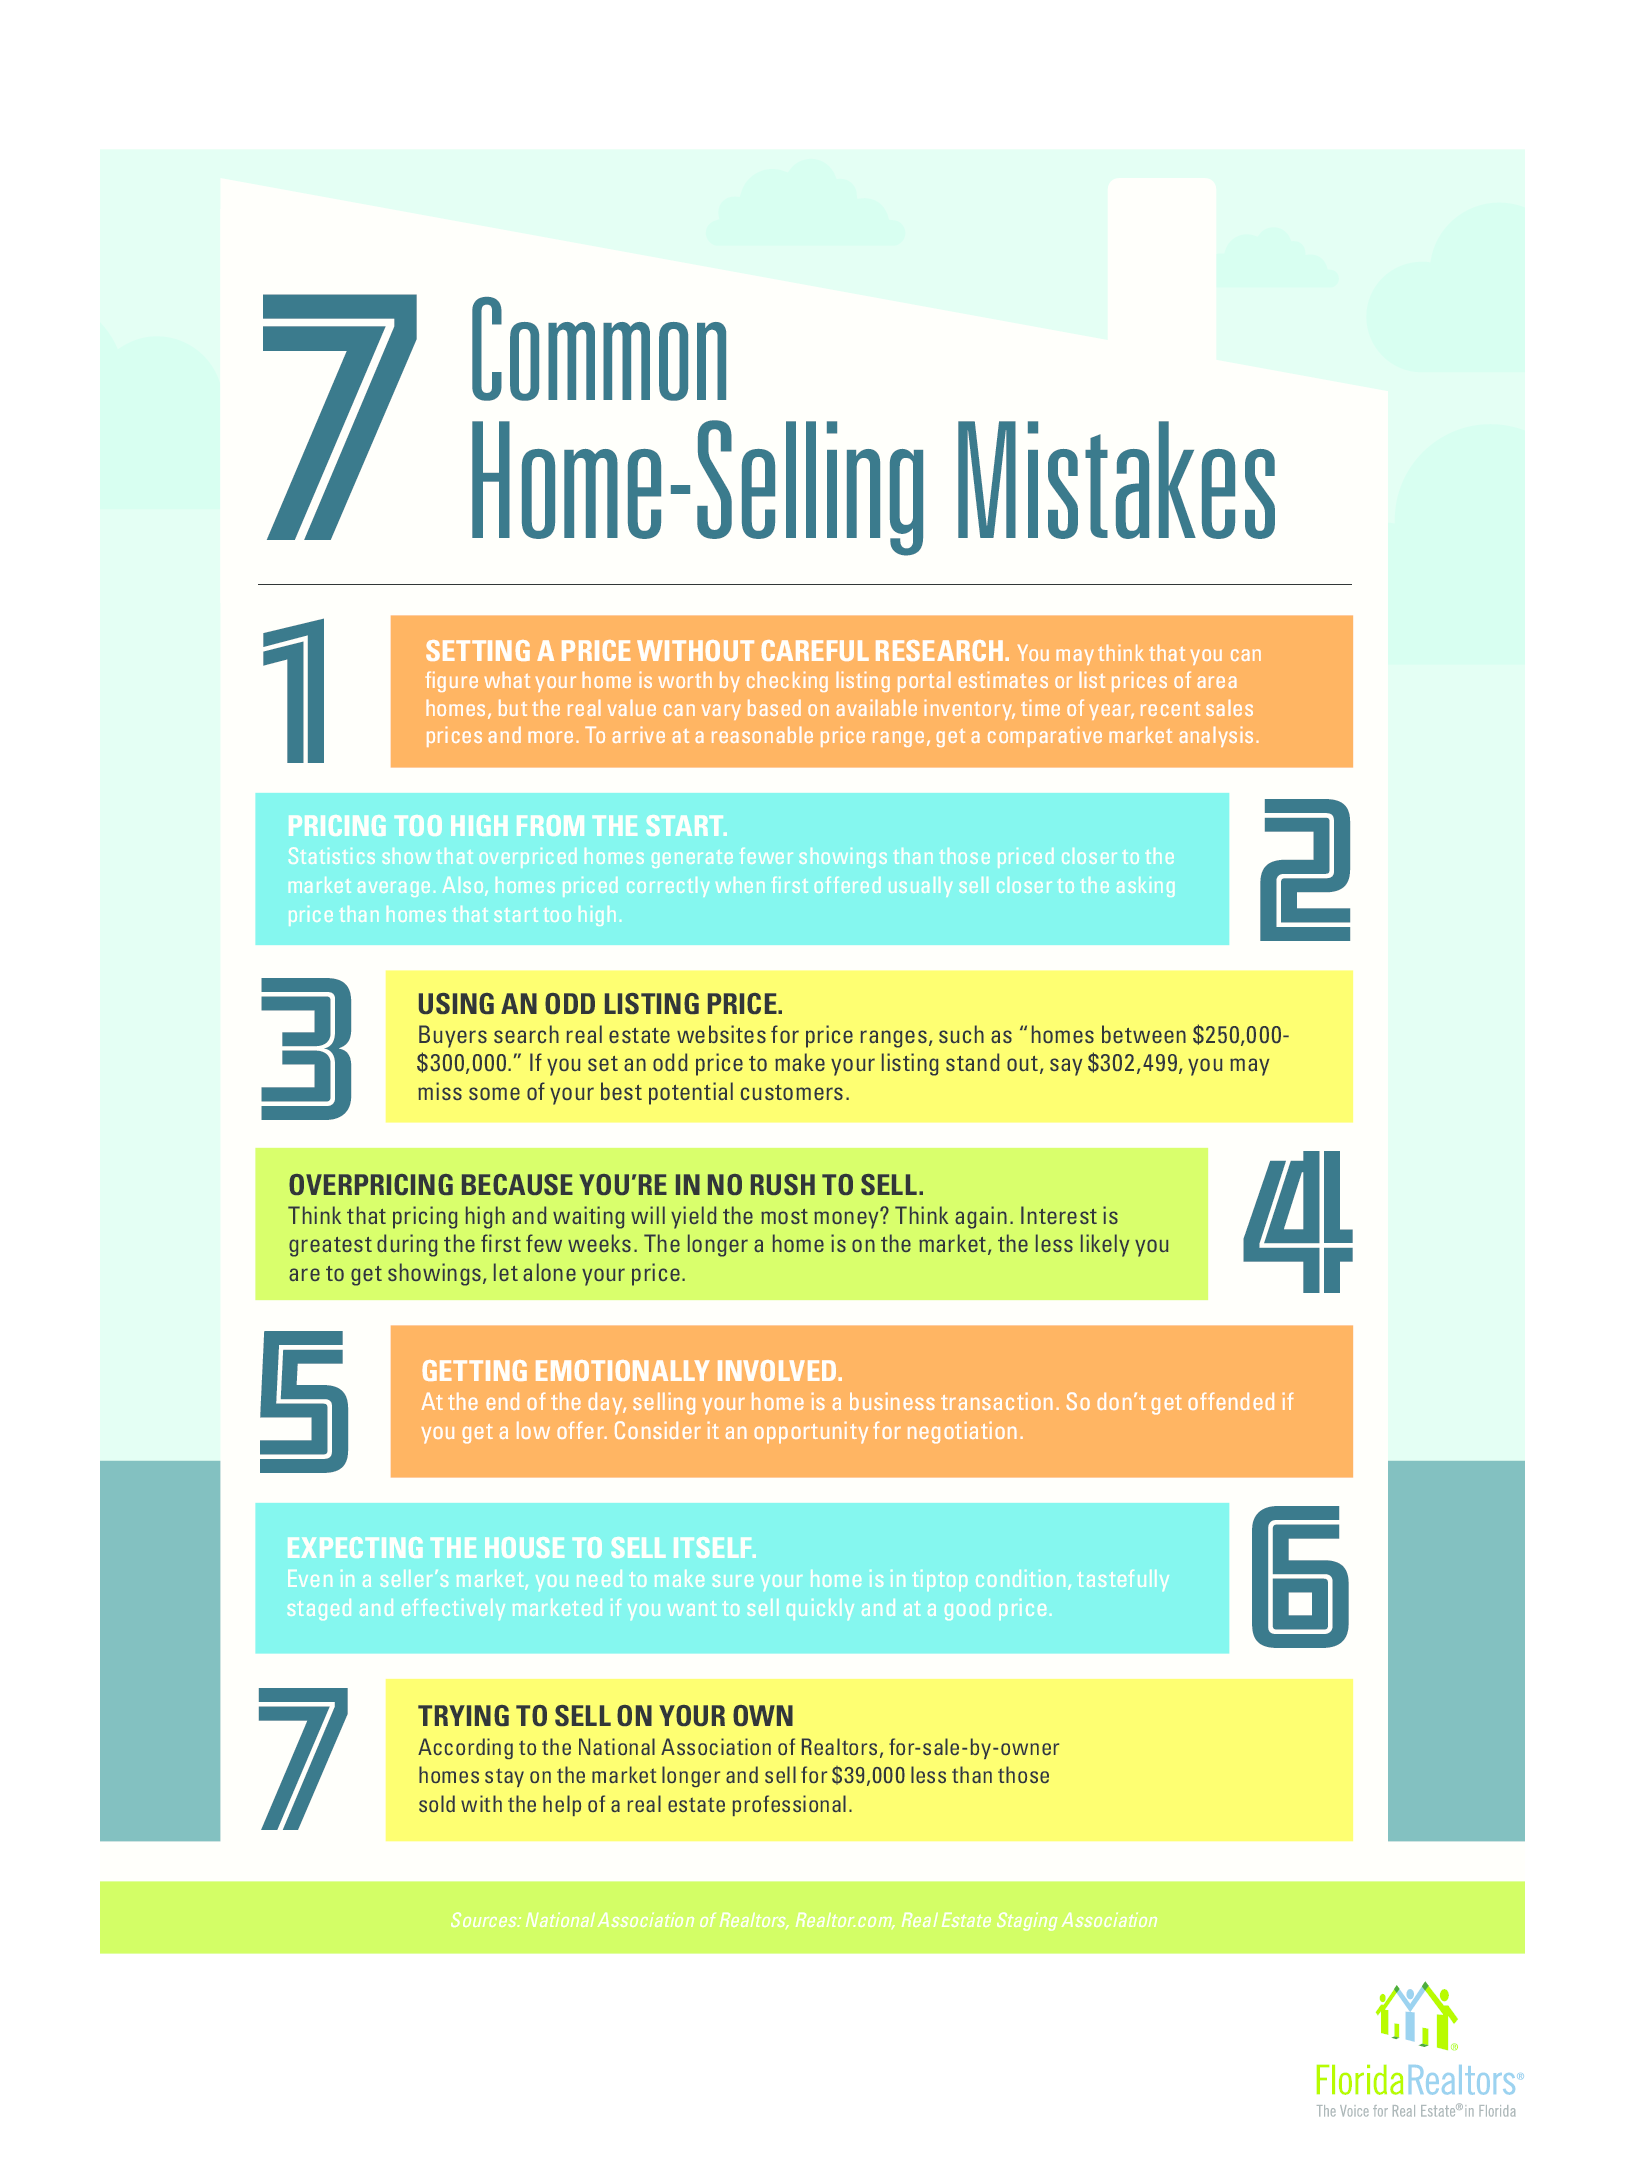 7 most common home selling mistakes according to nar